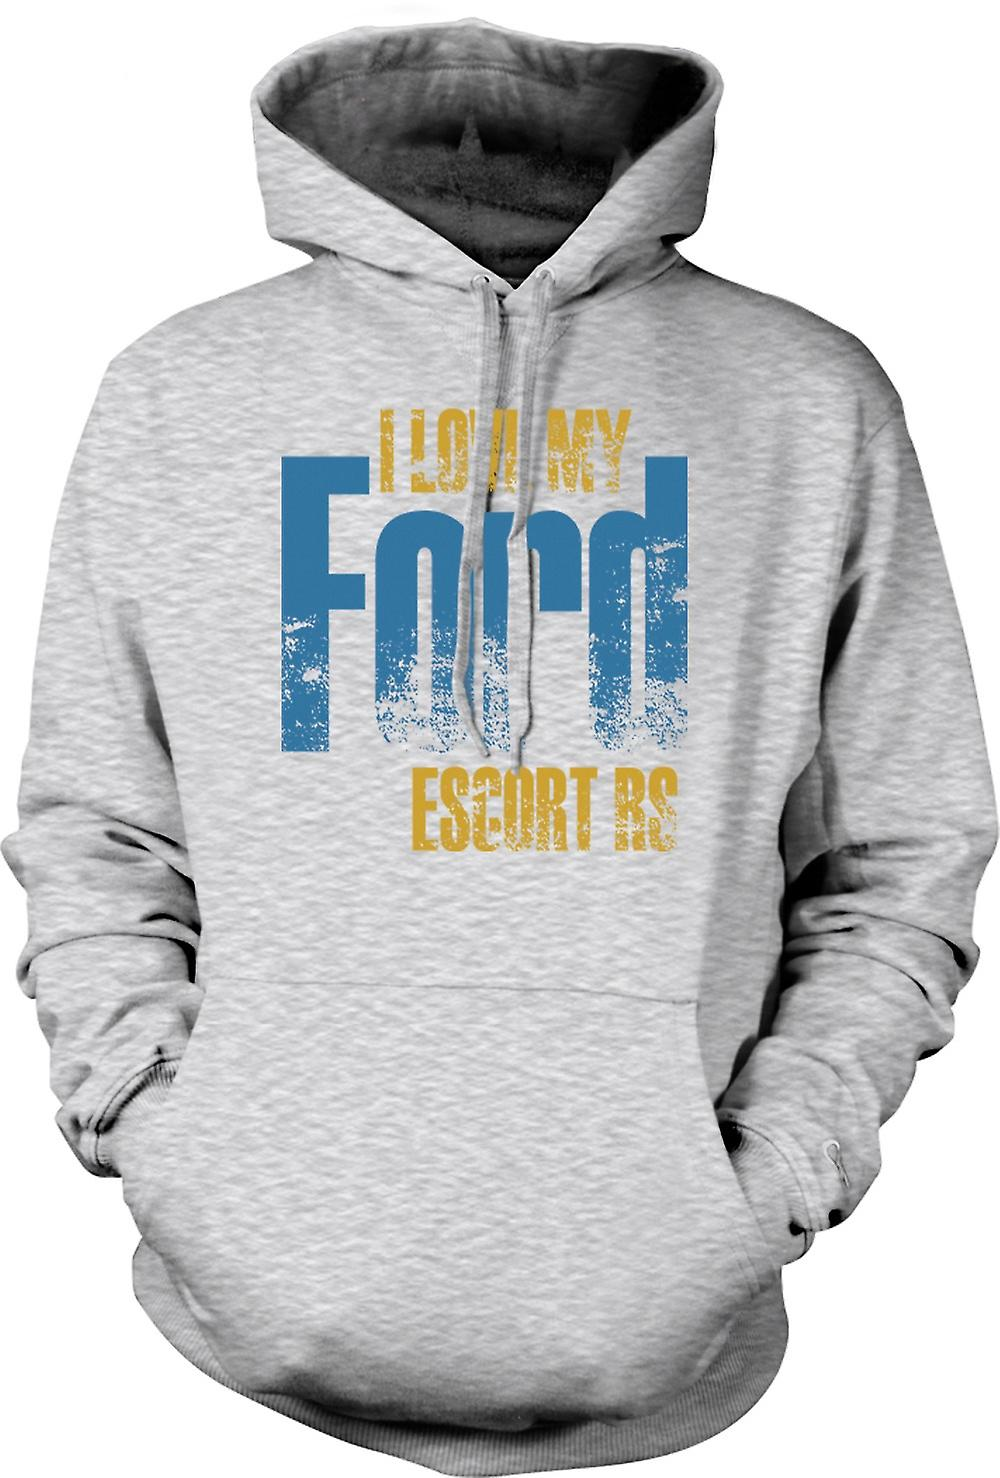 Mens Hoodie - I Love My Ford Escort RS - passionné de voiture